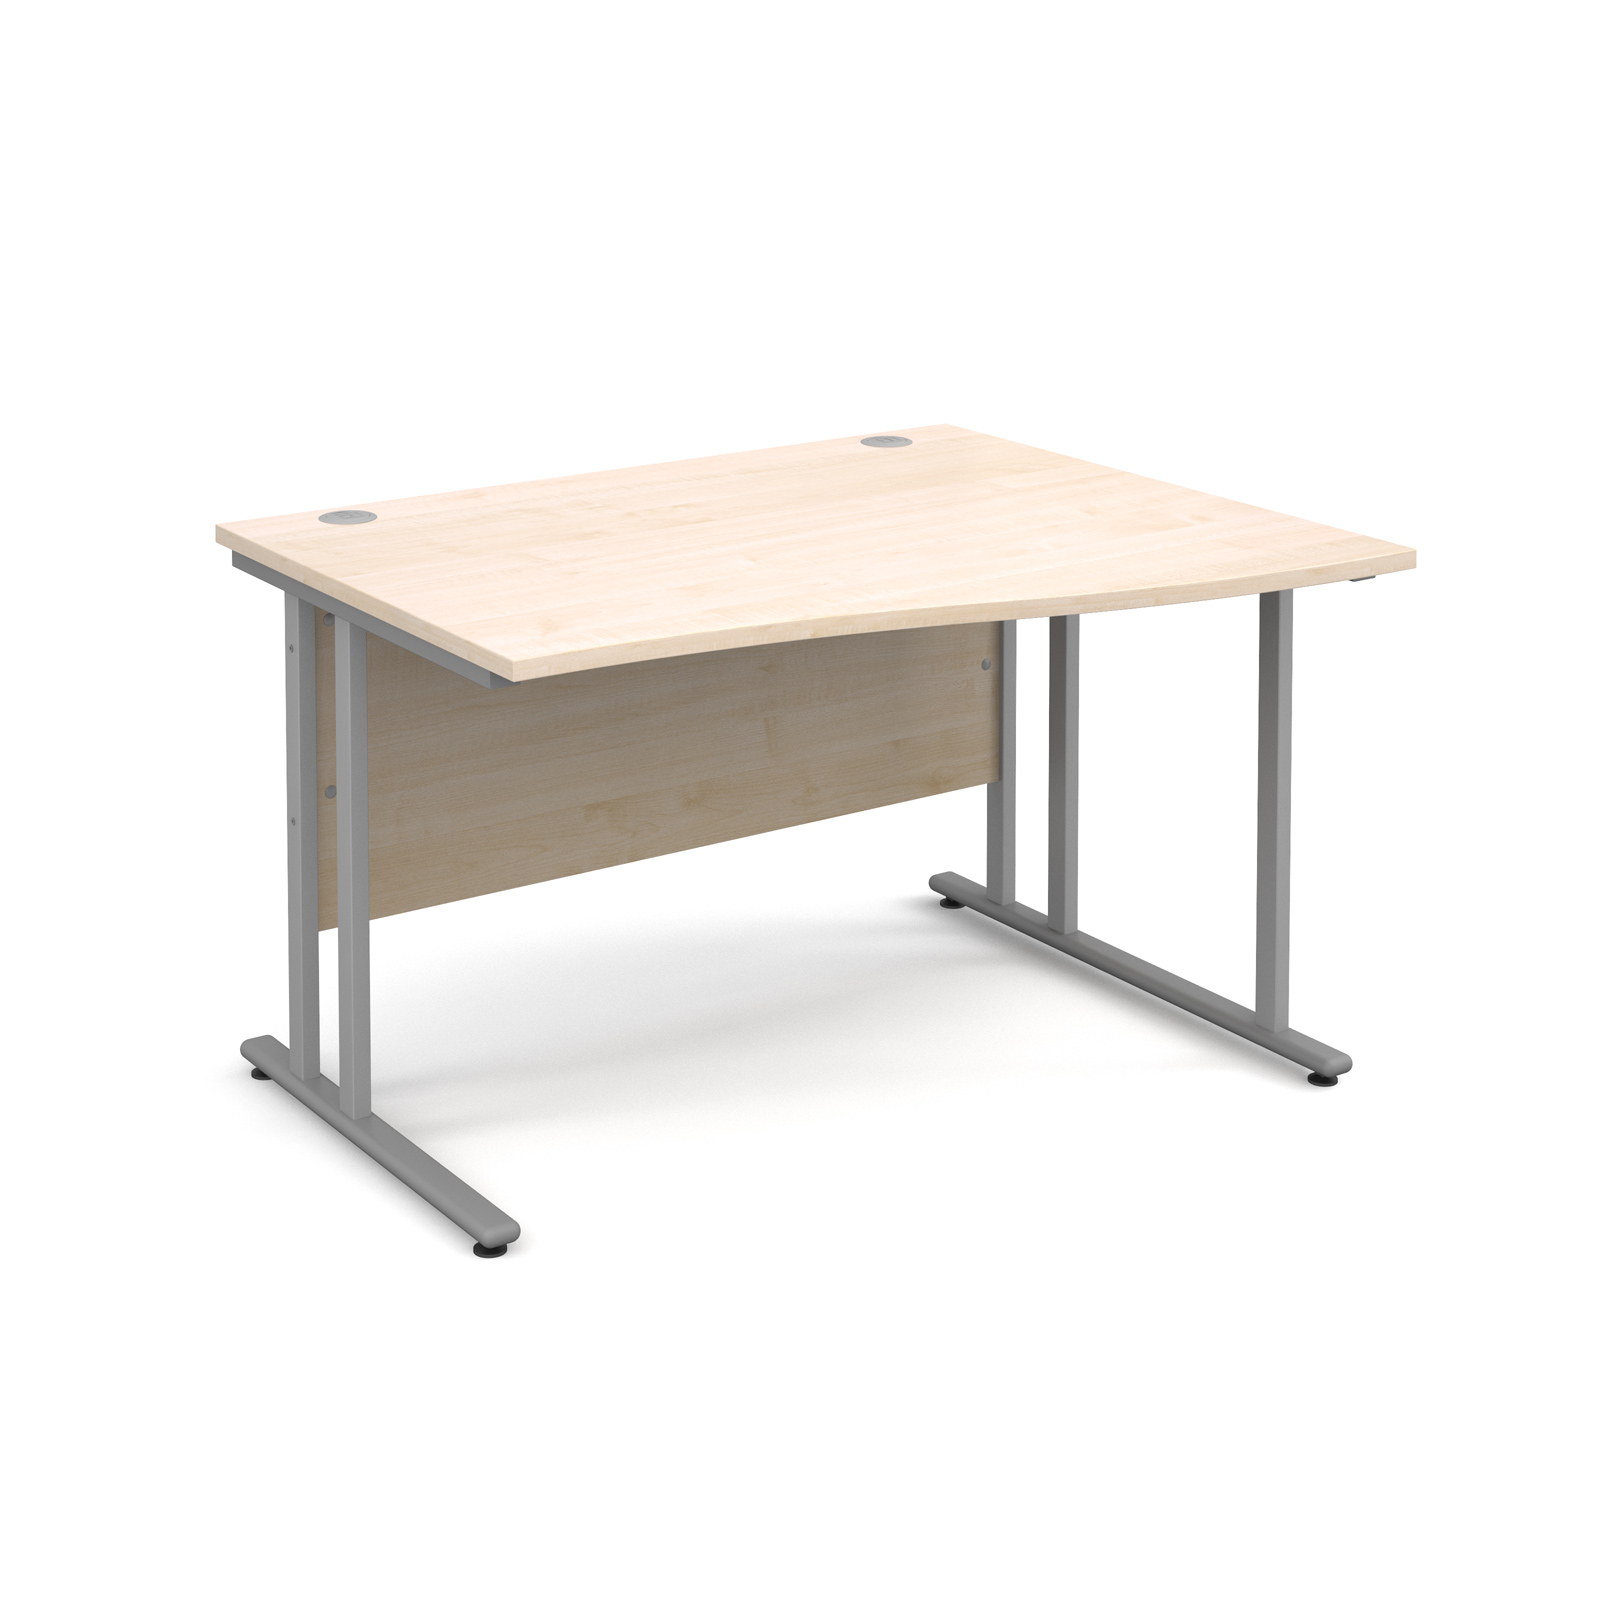 Maestro 25 SL right hand wave desk 1200mm - silver cantilever frame, maple top